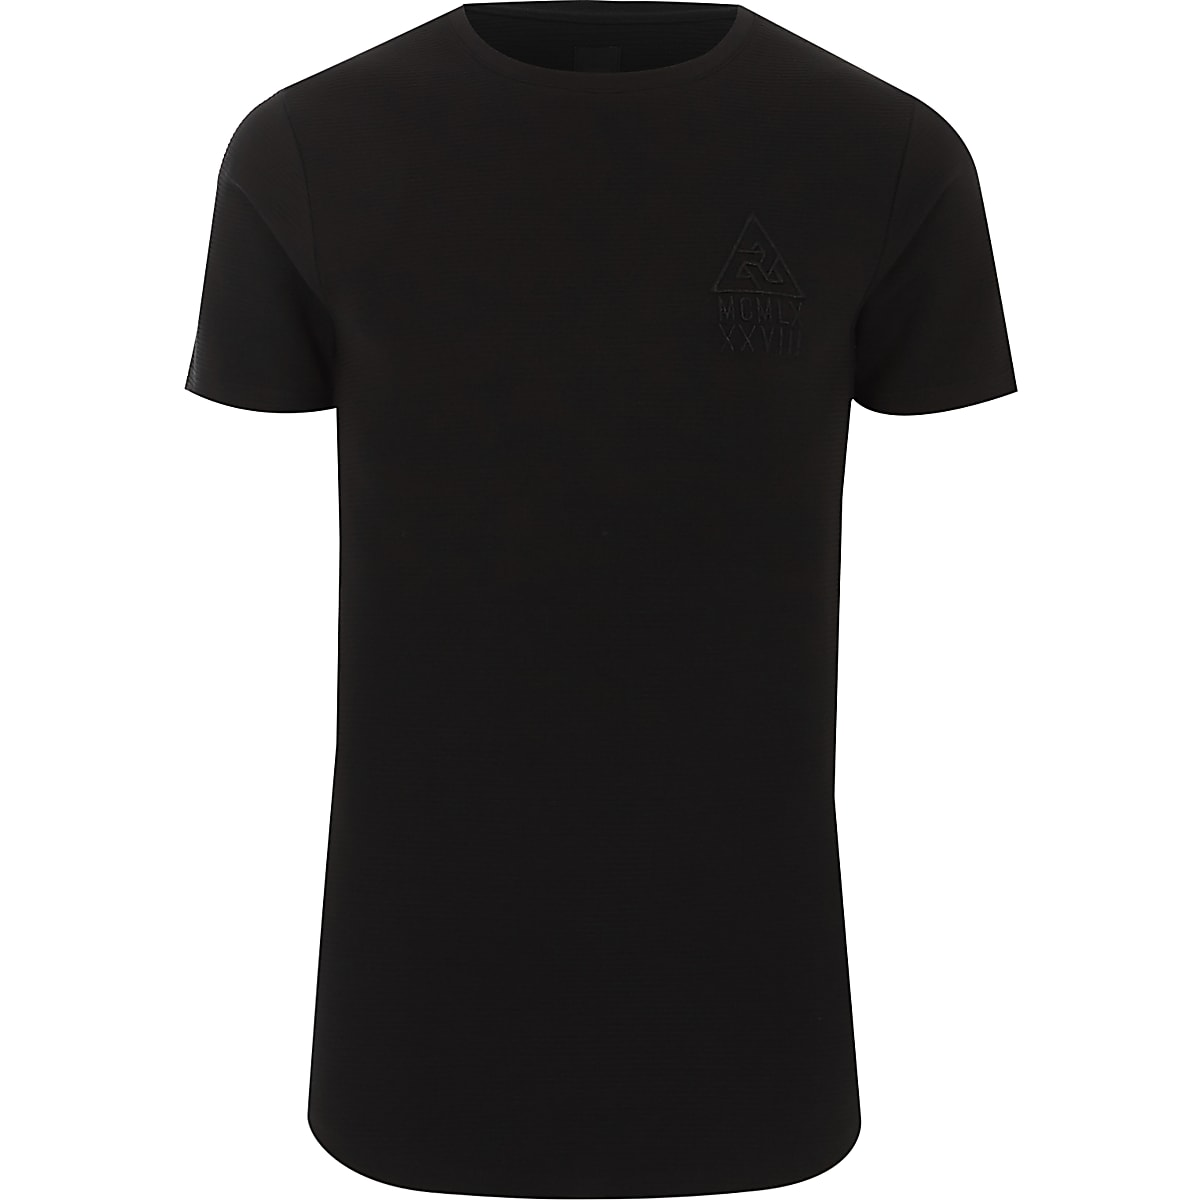 Black ribbed muscle fit logo T-shirt